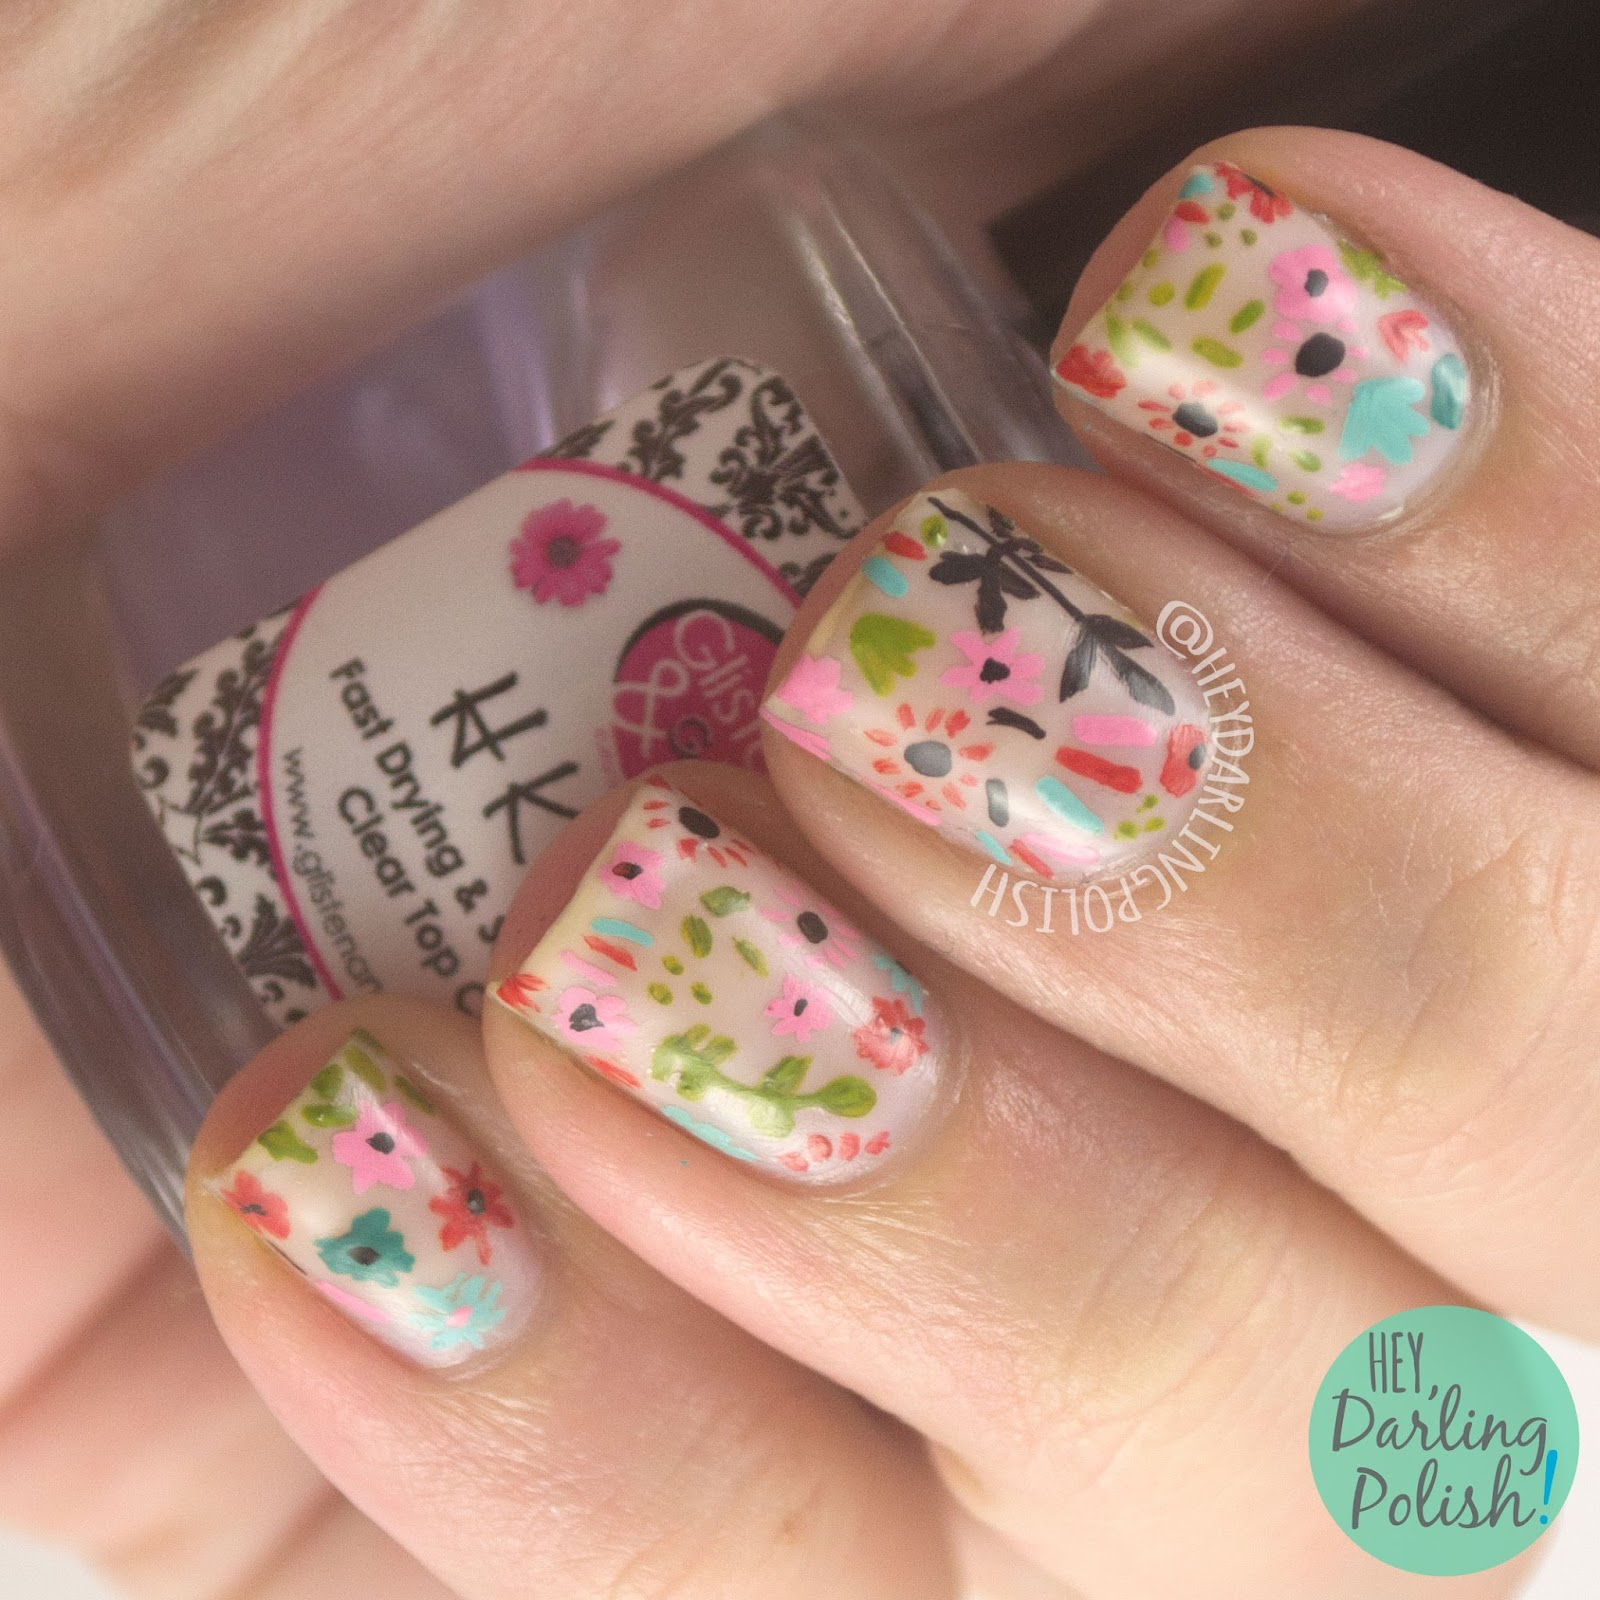 nails, nail art, nail polish, flowers, pattern, 31 day challenge, 31dc2014, hey darling polish